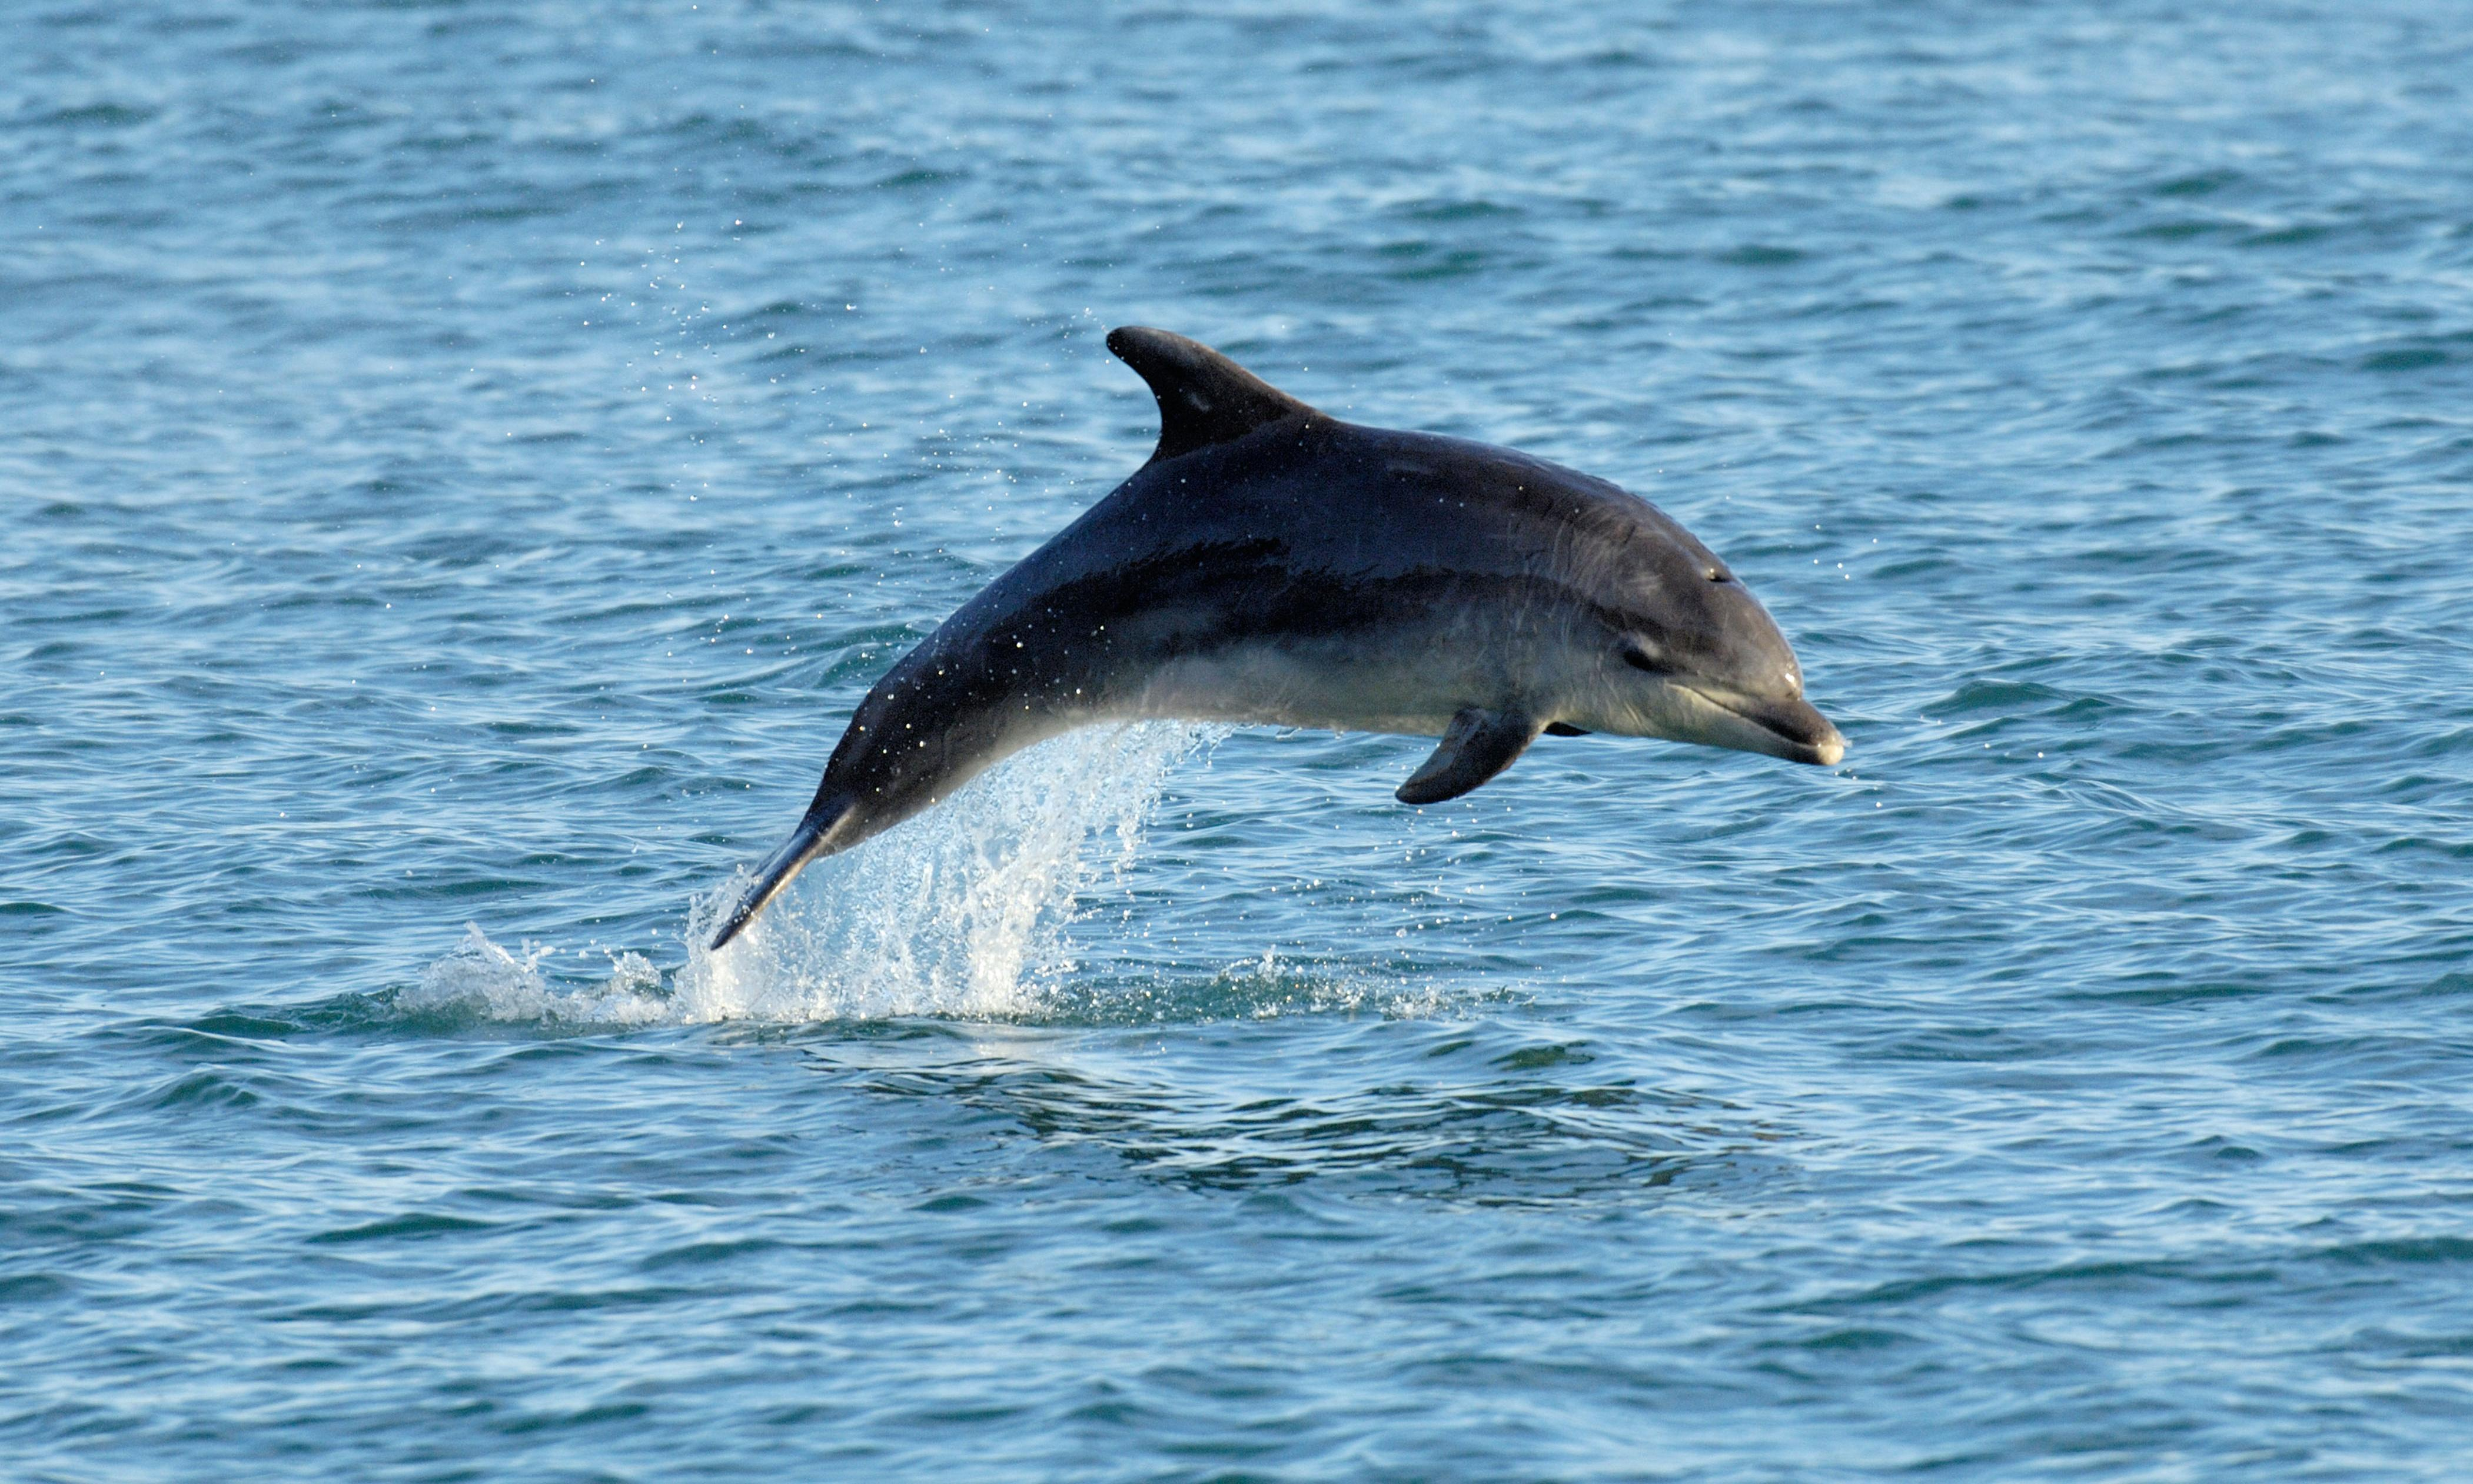 Antibiotic resistance rising among dolphins, study reveals